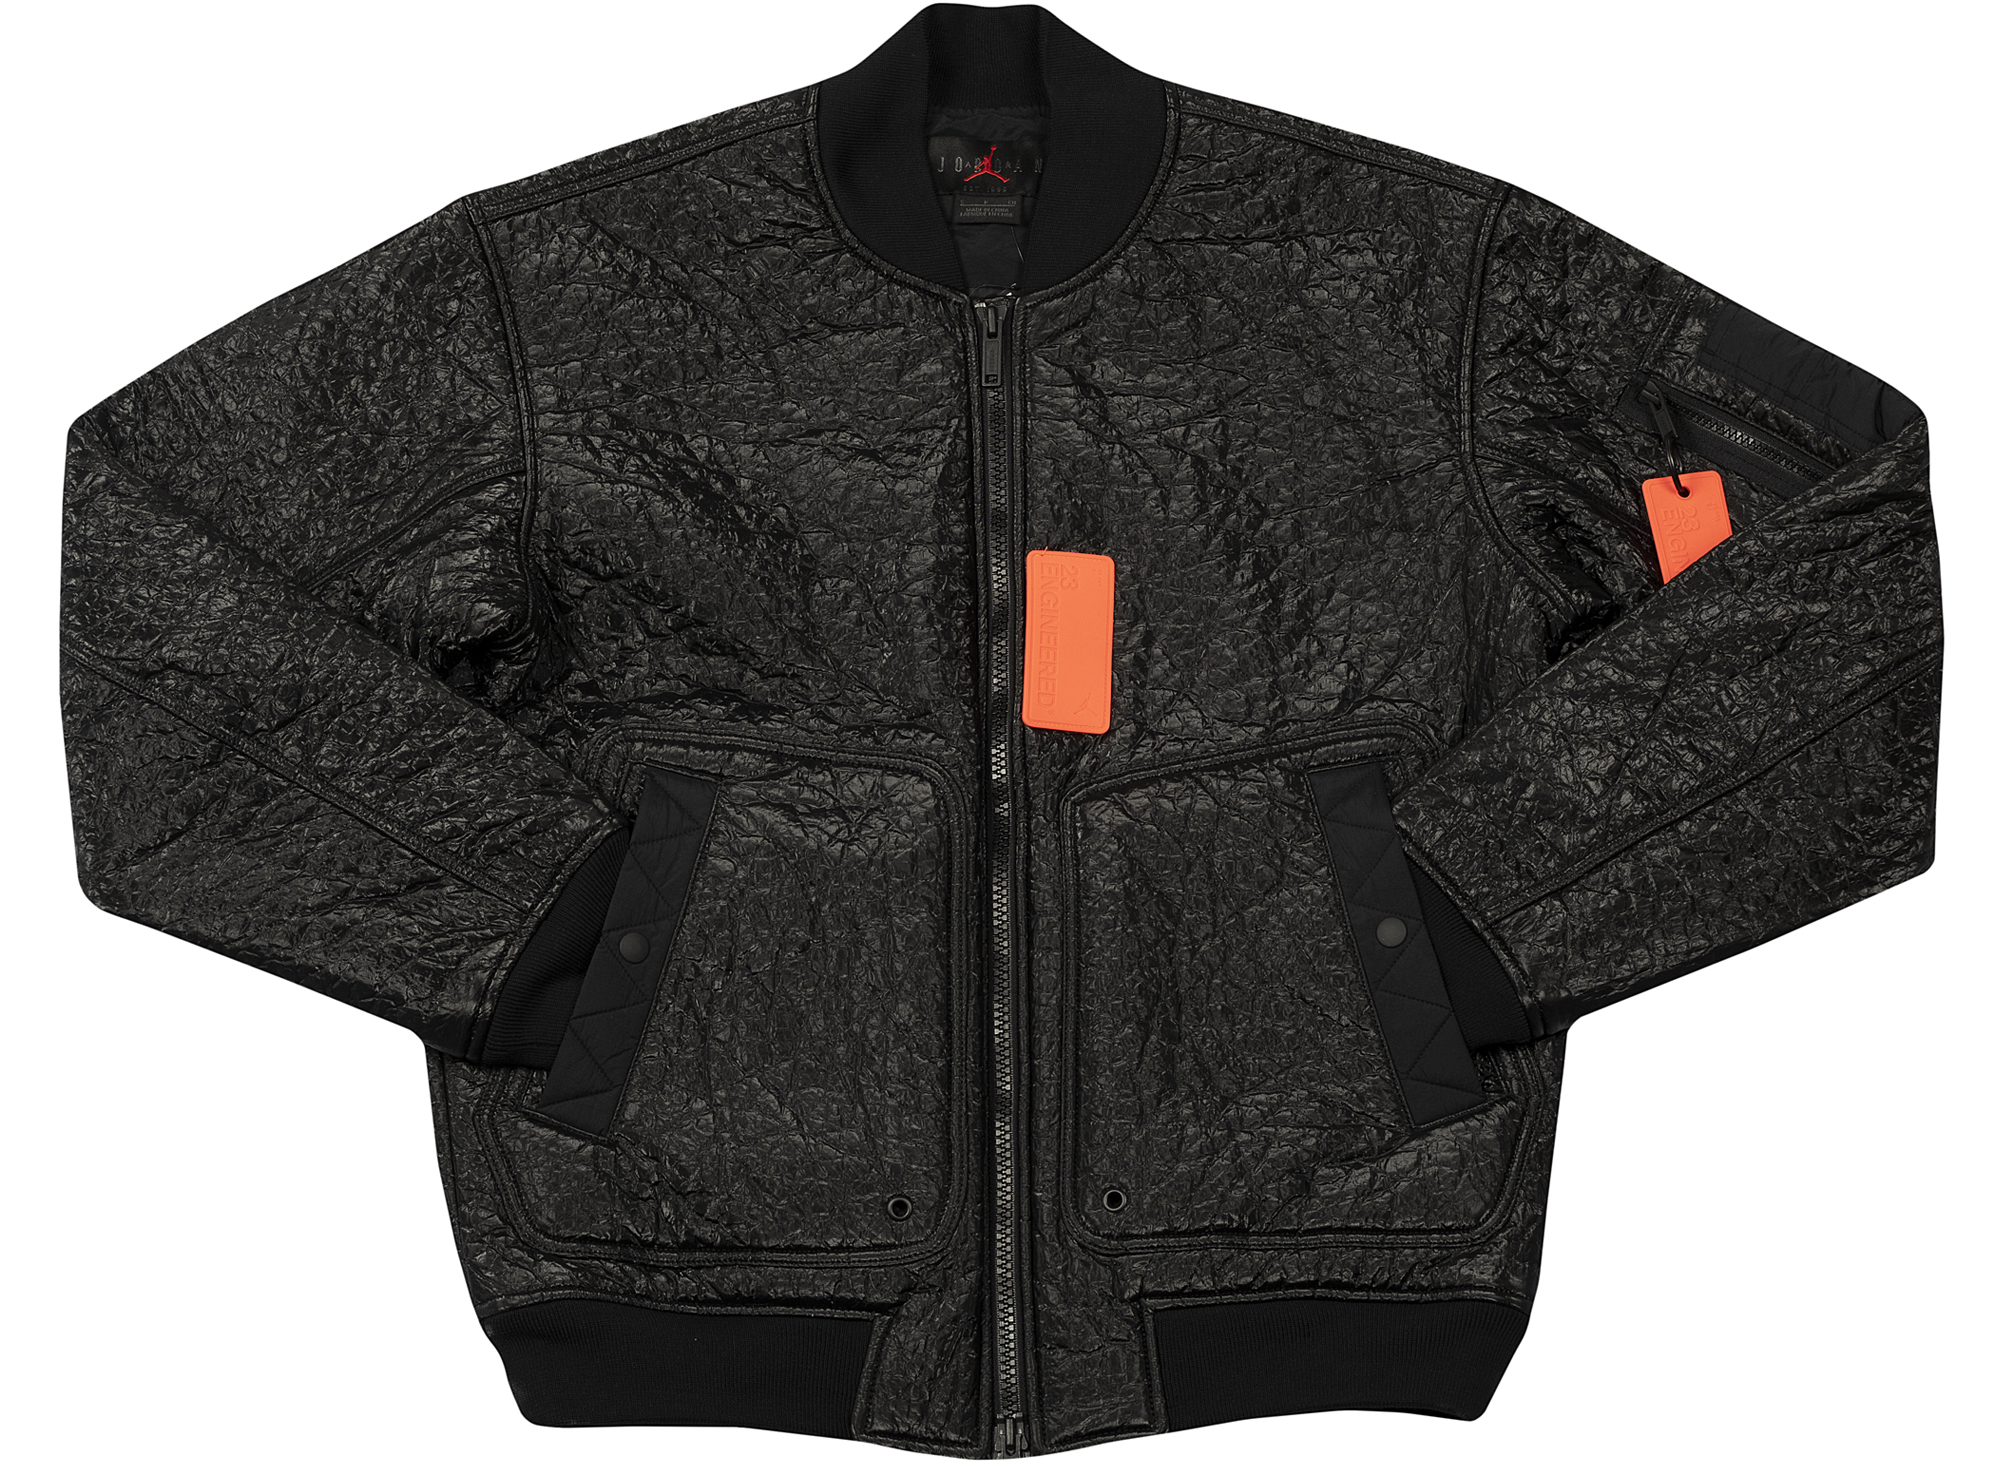 Jordan 23 Engineered MA-1 Bomber Jacket